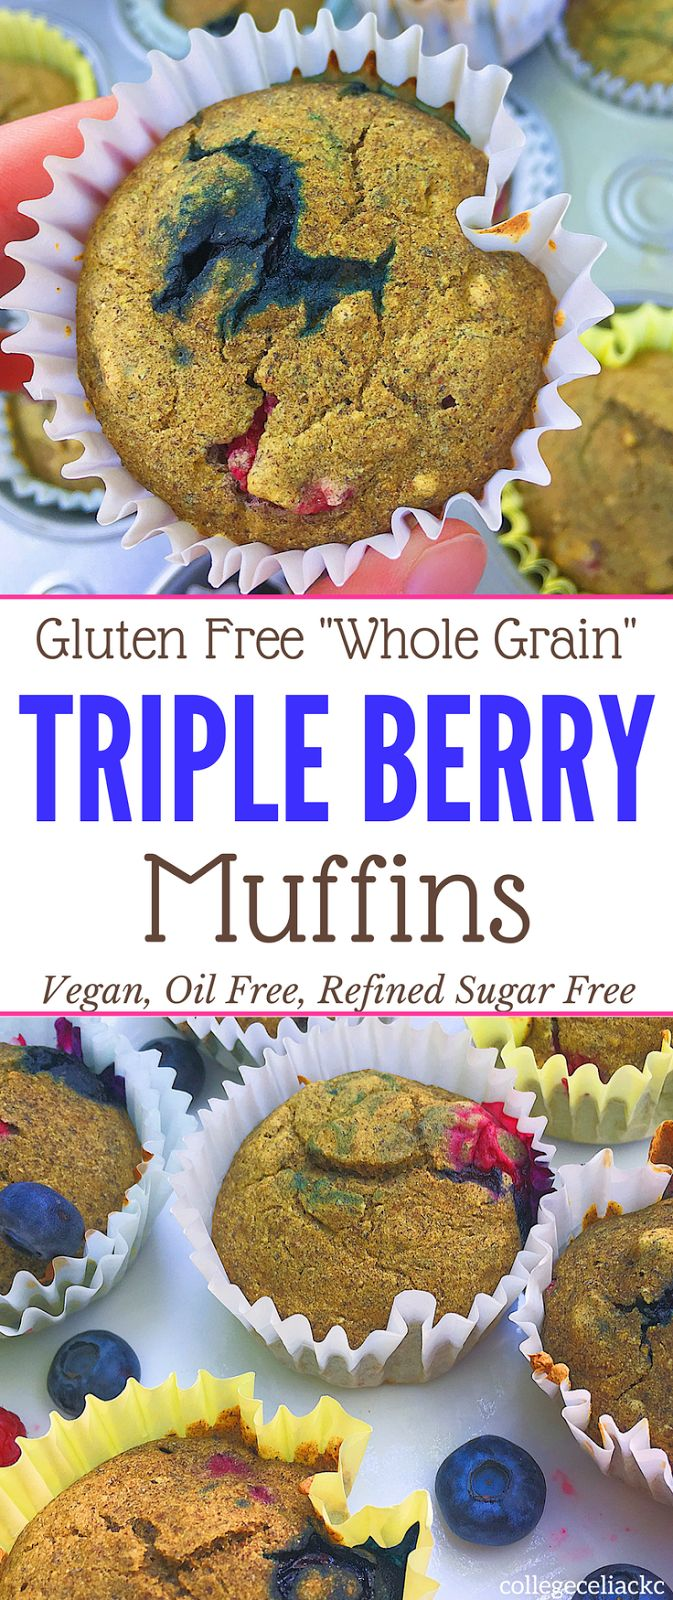 """Craving a healthy blueberry muffin recipe that is free of allergens but packed with flavor? Then these triple berry gluten free muffins are exactly what you need! Thanks to quinoa and buckwheat flour, these vegan muffins have a """"whole grains"""" flavor. And, despite being oil free and refined sugar free, these gluten free muffins will disappear before you know it!"""